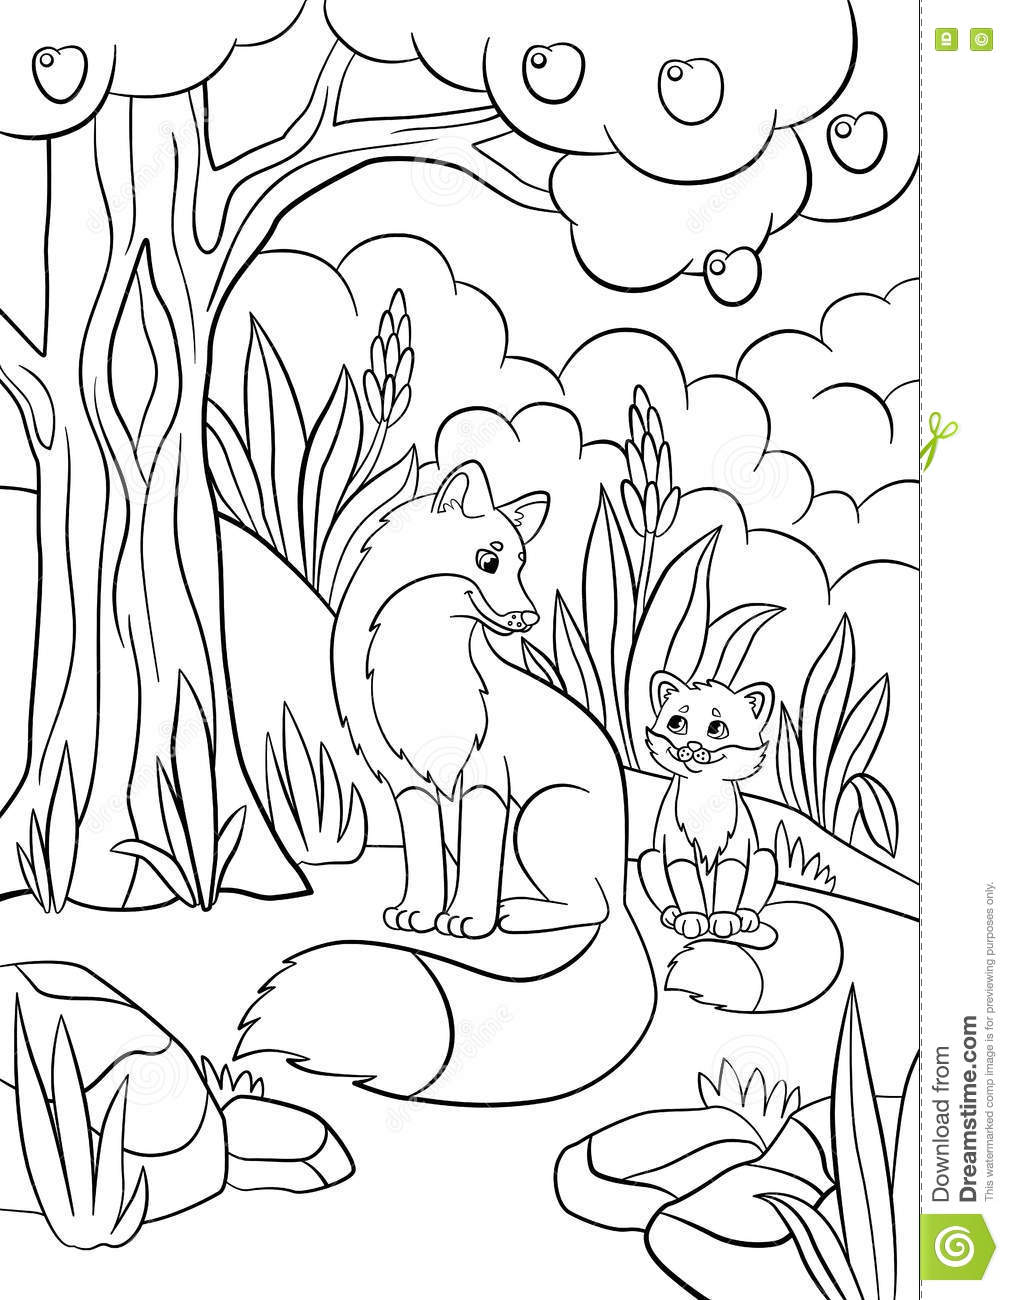 coloring pages wild animals mother fox with her little cute baby stock vector illustration. Black Bedroom Furniture Sets. Home Design Ideas